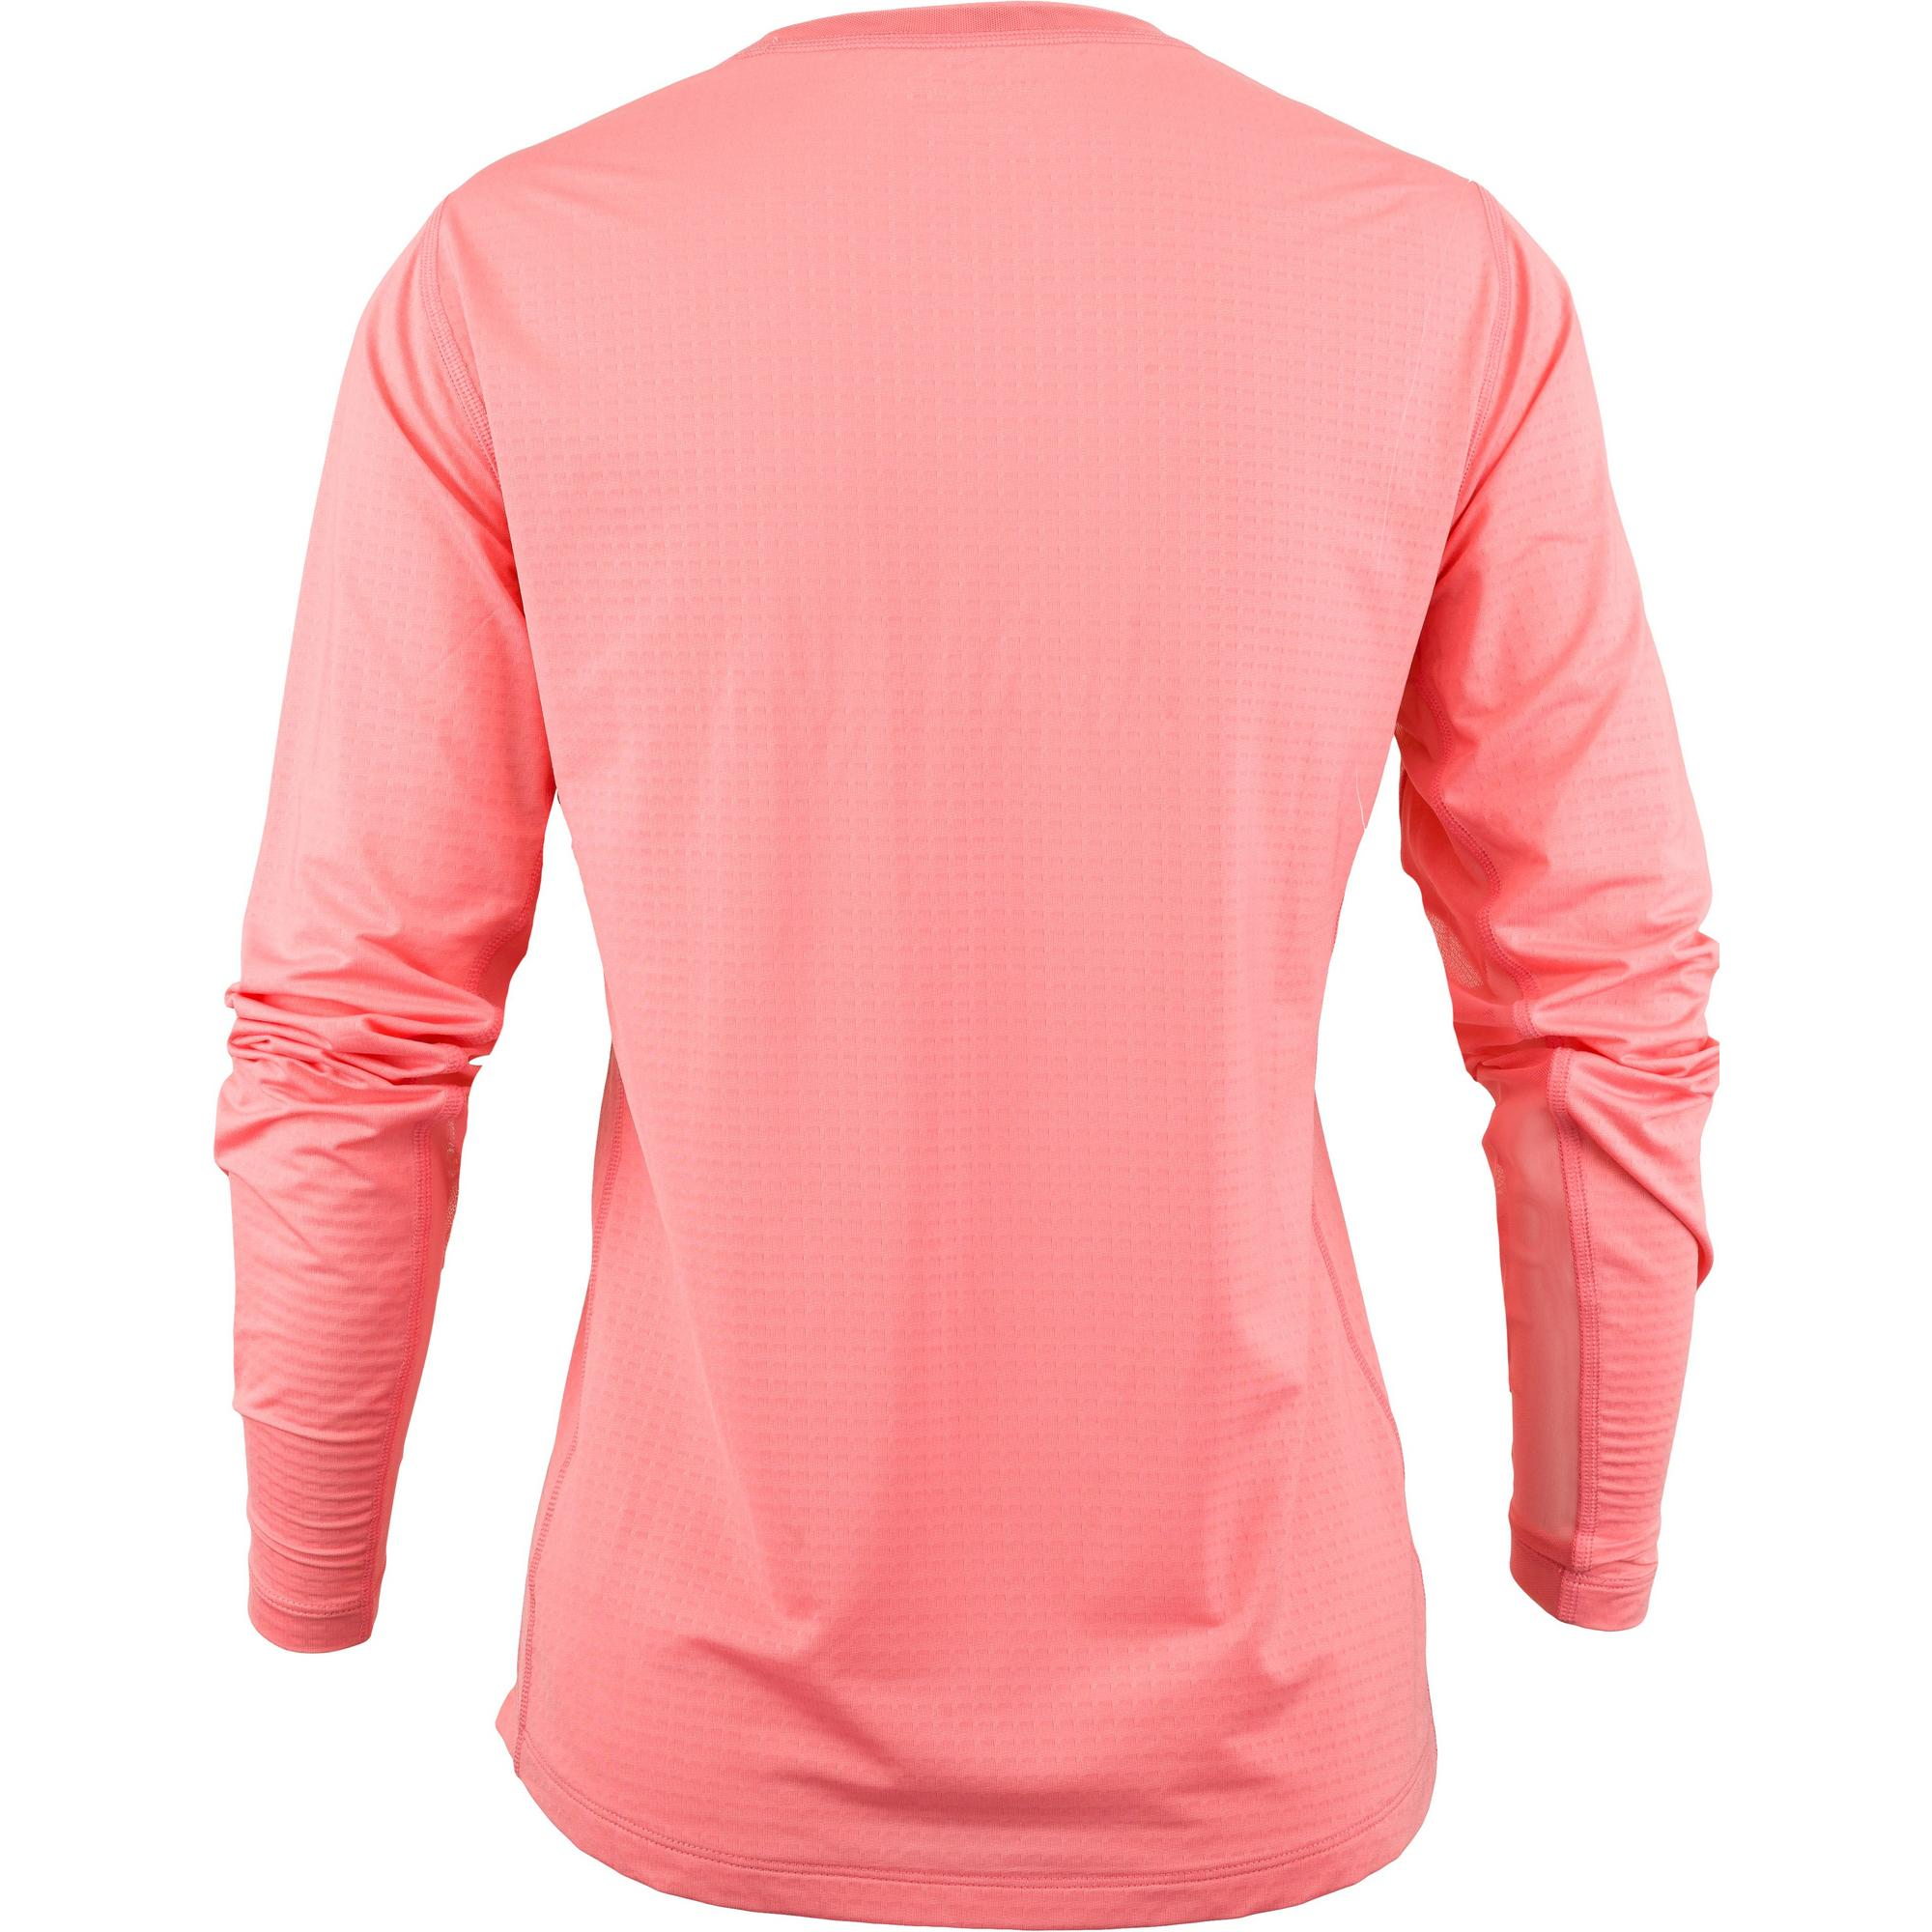 Women's Cooling Crew Neck Long Sleeve Top